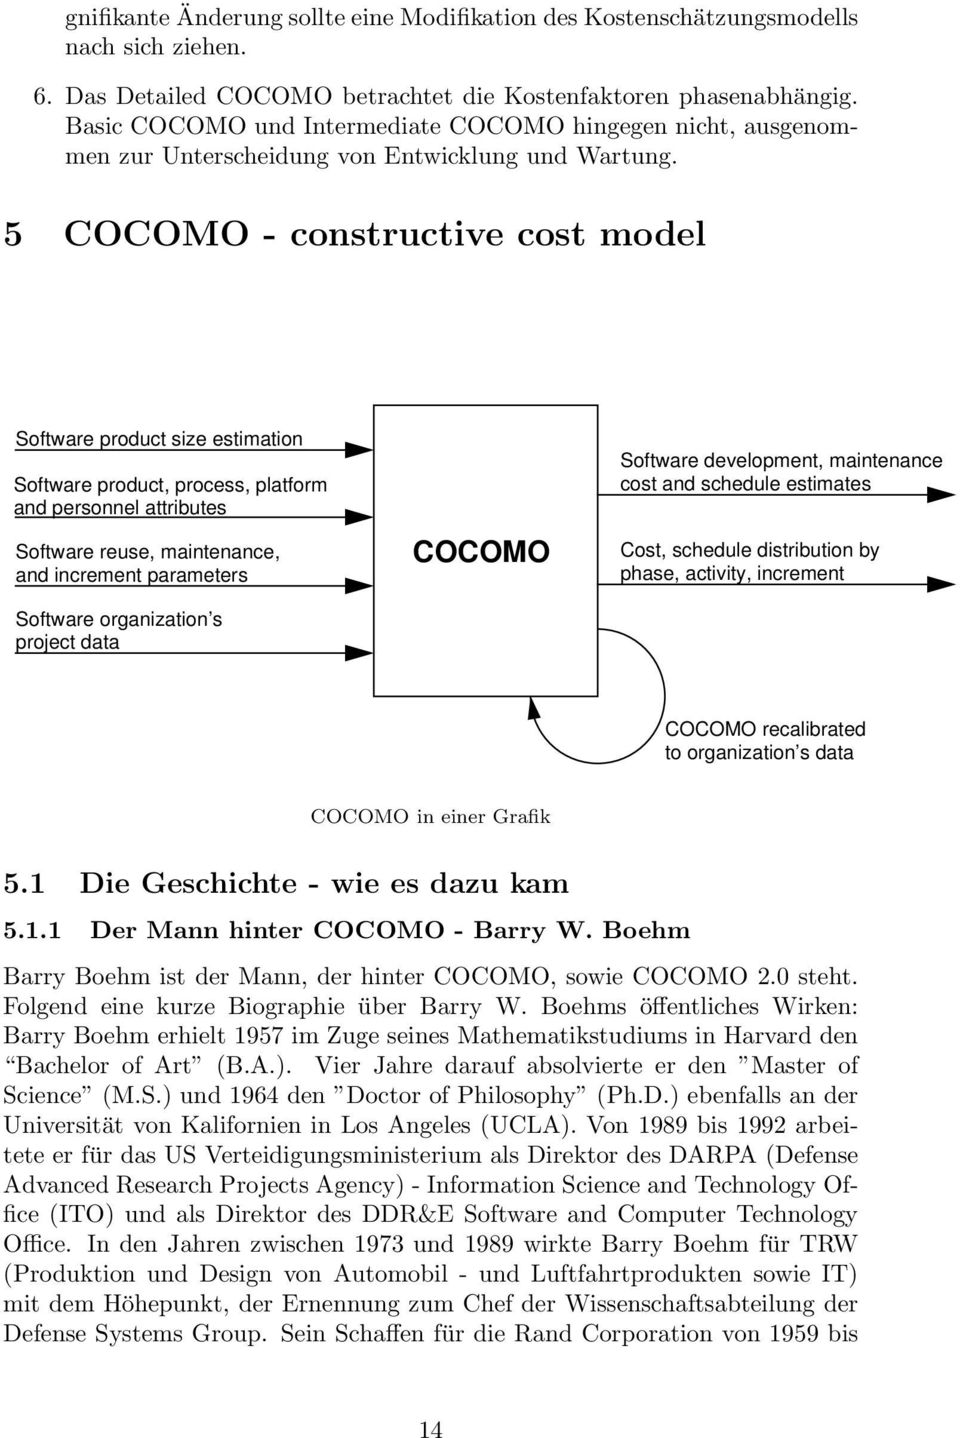 All of Basic its COCOMO relationships und Intermediate and algorithms COCOMO are publicly hingegen nicht, available; ausgenommen zur Unterscheidung von Entwicklung und Wartung.